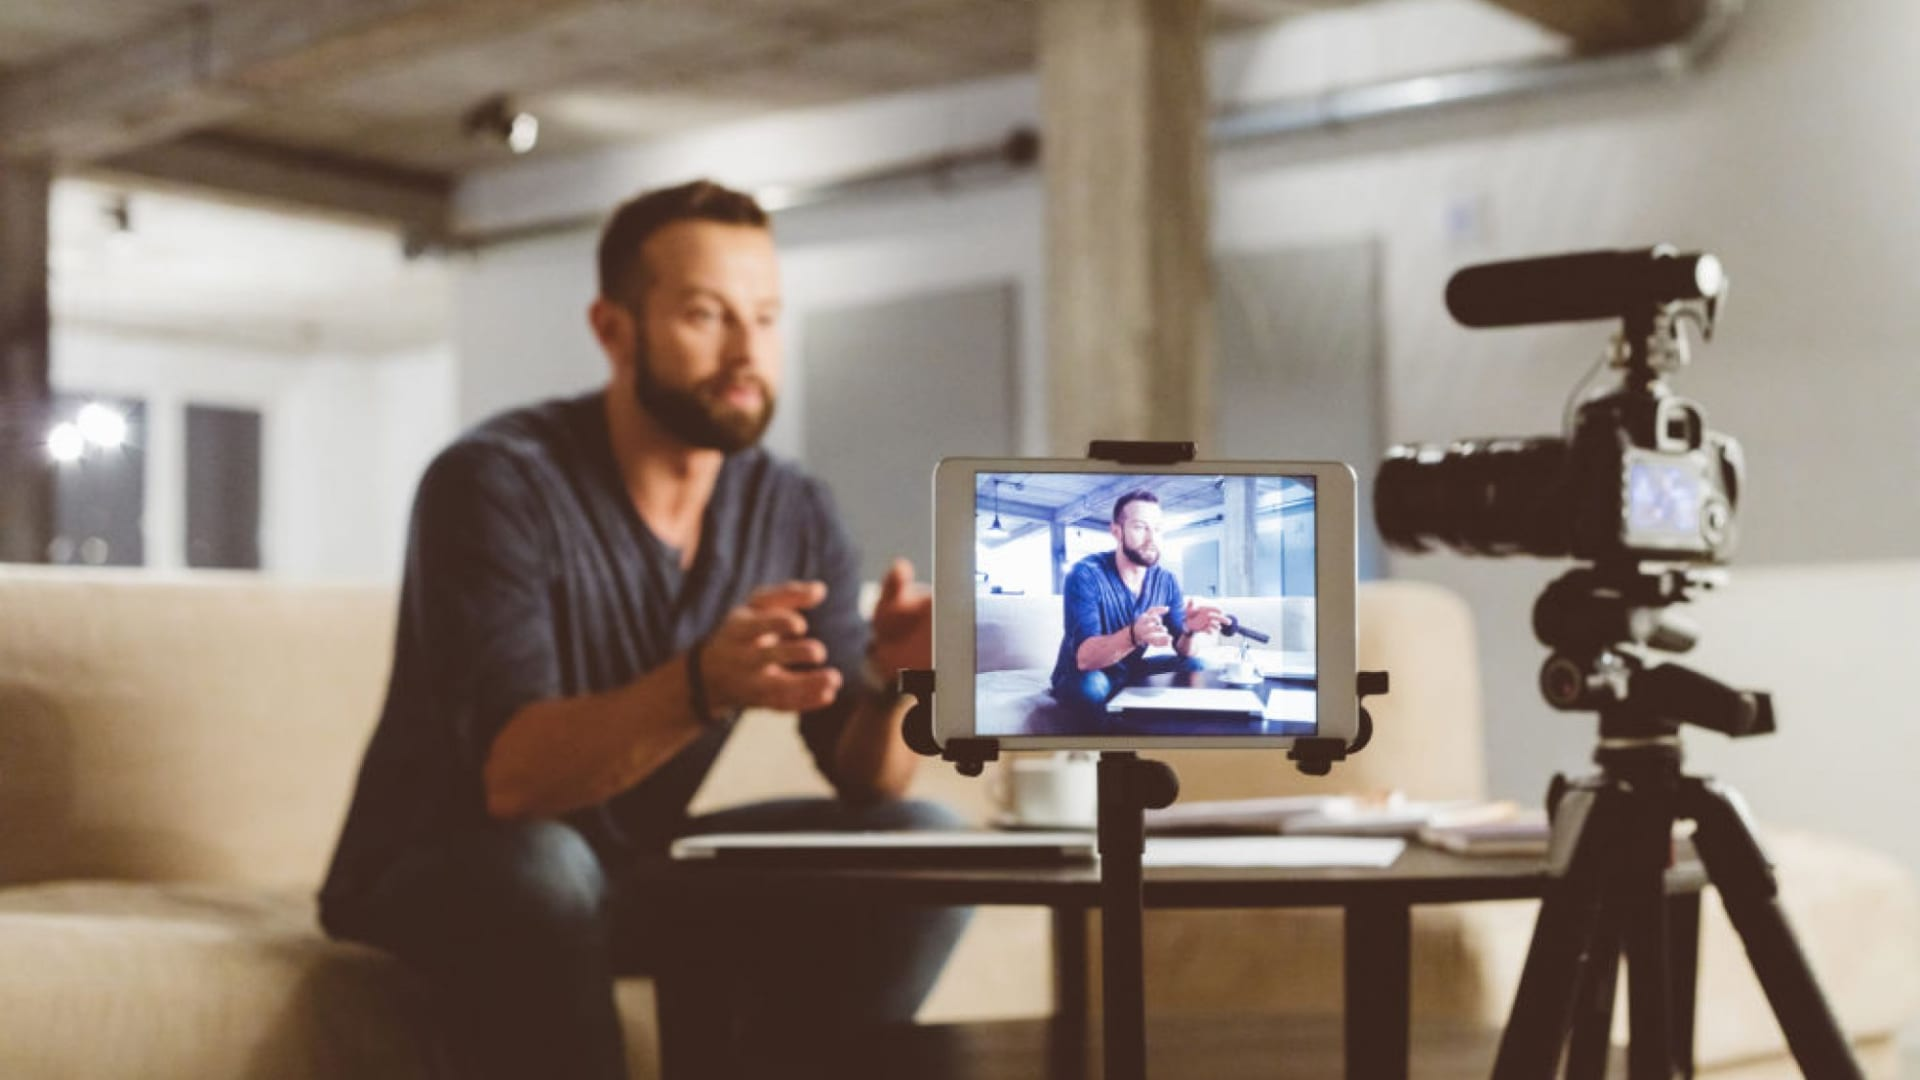 4 Steps for Creating an Authentic Video Apology